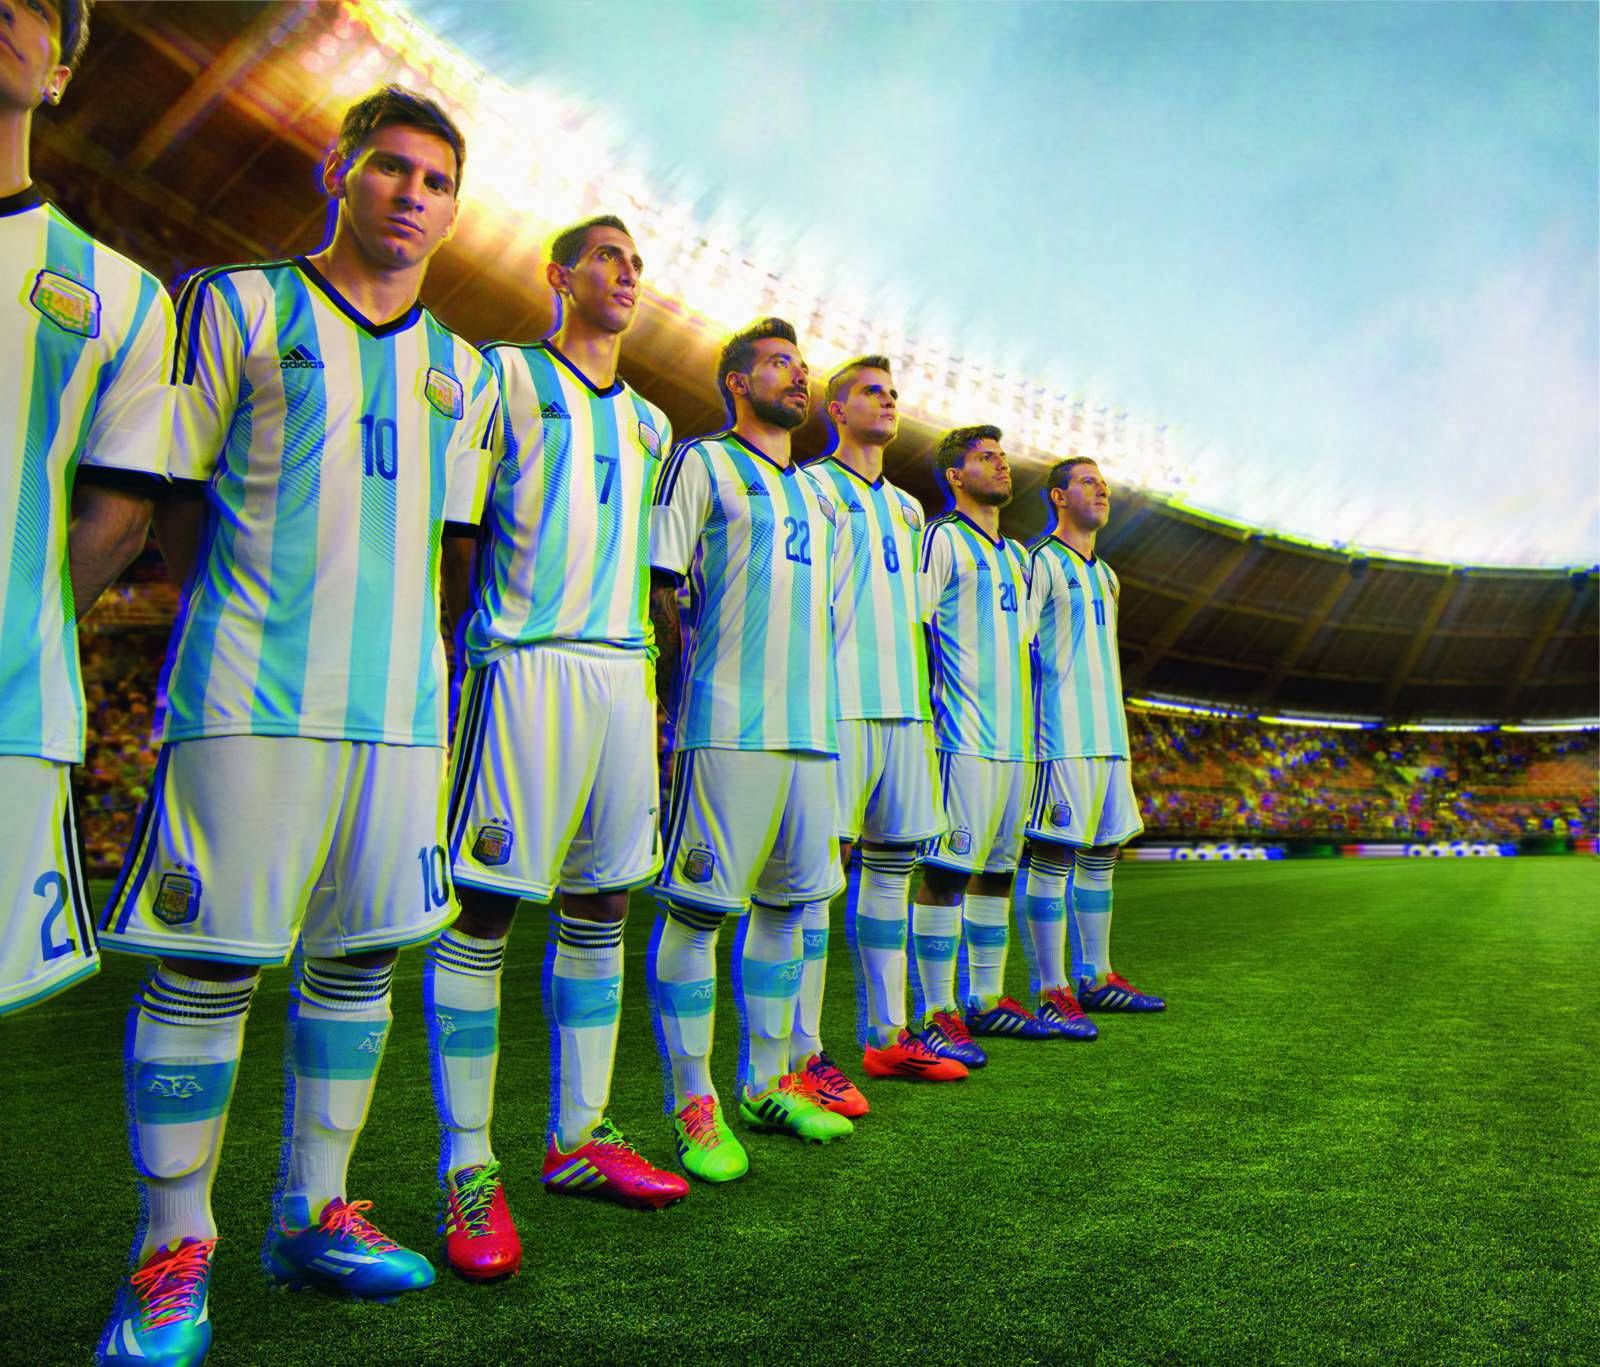 Argentina Page Of Football Wallpapers Hd 1920 1080 Argentina Wallpapers 45 Wallpapers Adorable Wallpapers Argentina Soccer Soccer Copa America Centenario